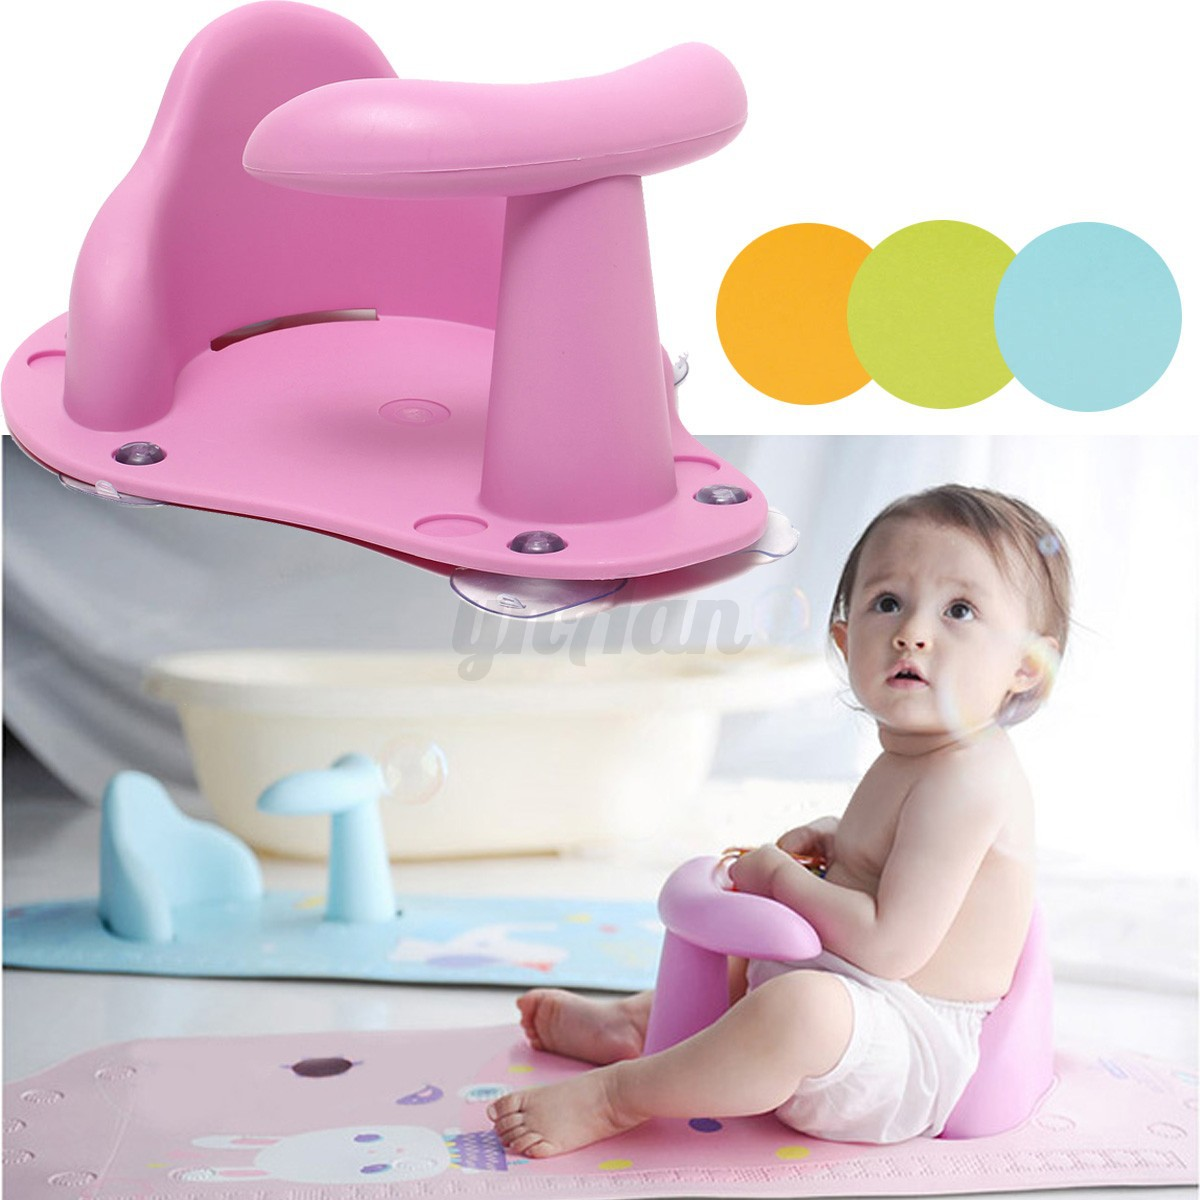 safety 1st baby bath seat ergonomic baby bathing chair support 4 colors ebay. Black Bedroom Furniture Sets. Home Design Ideas